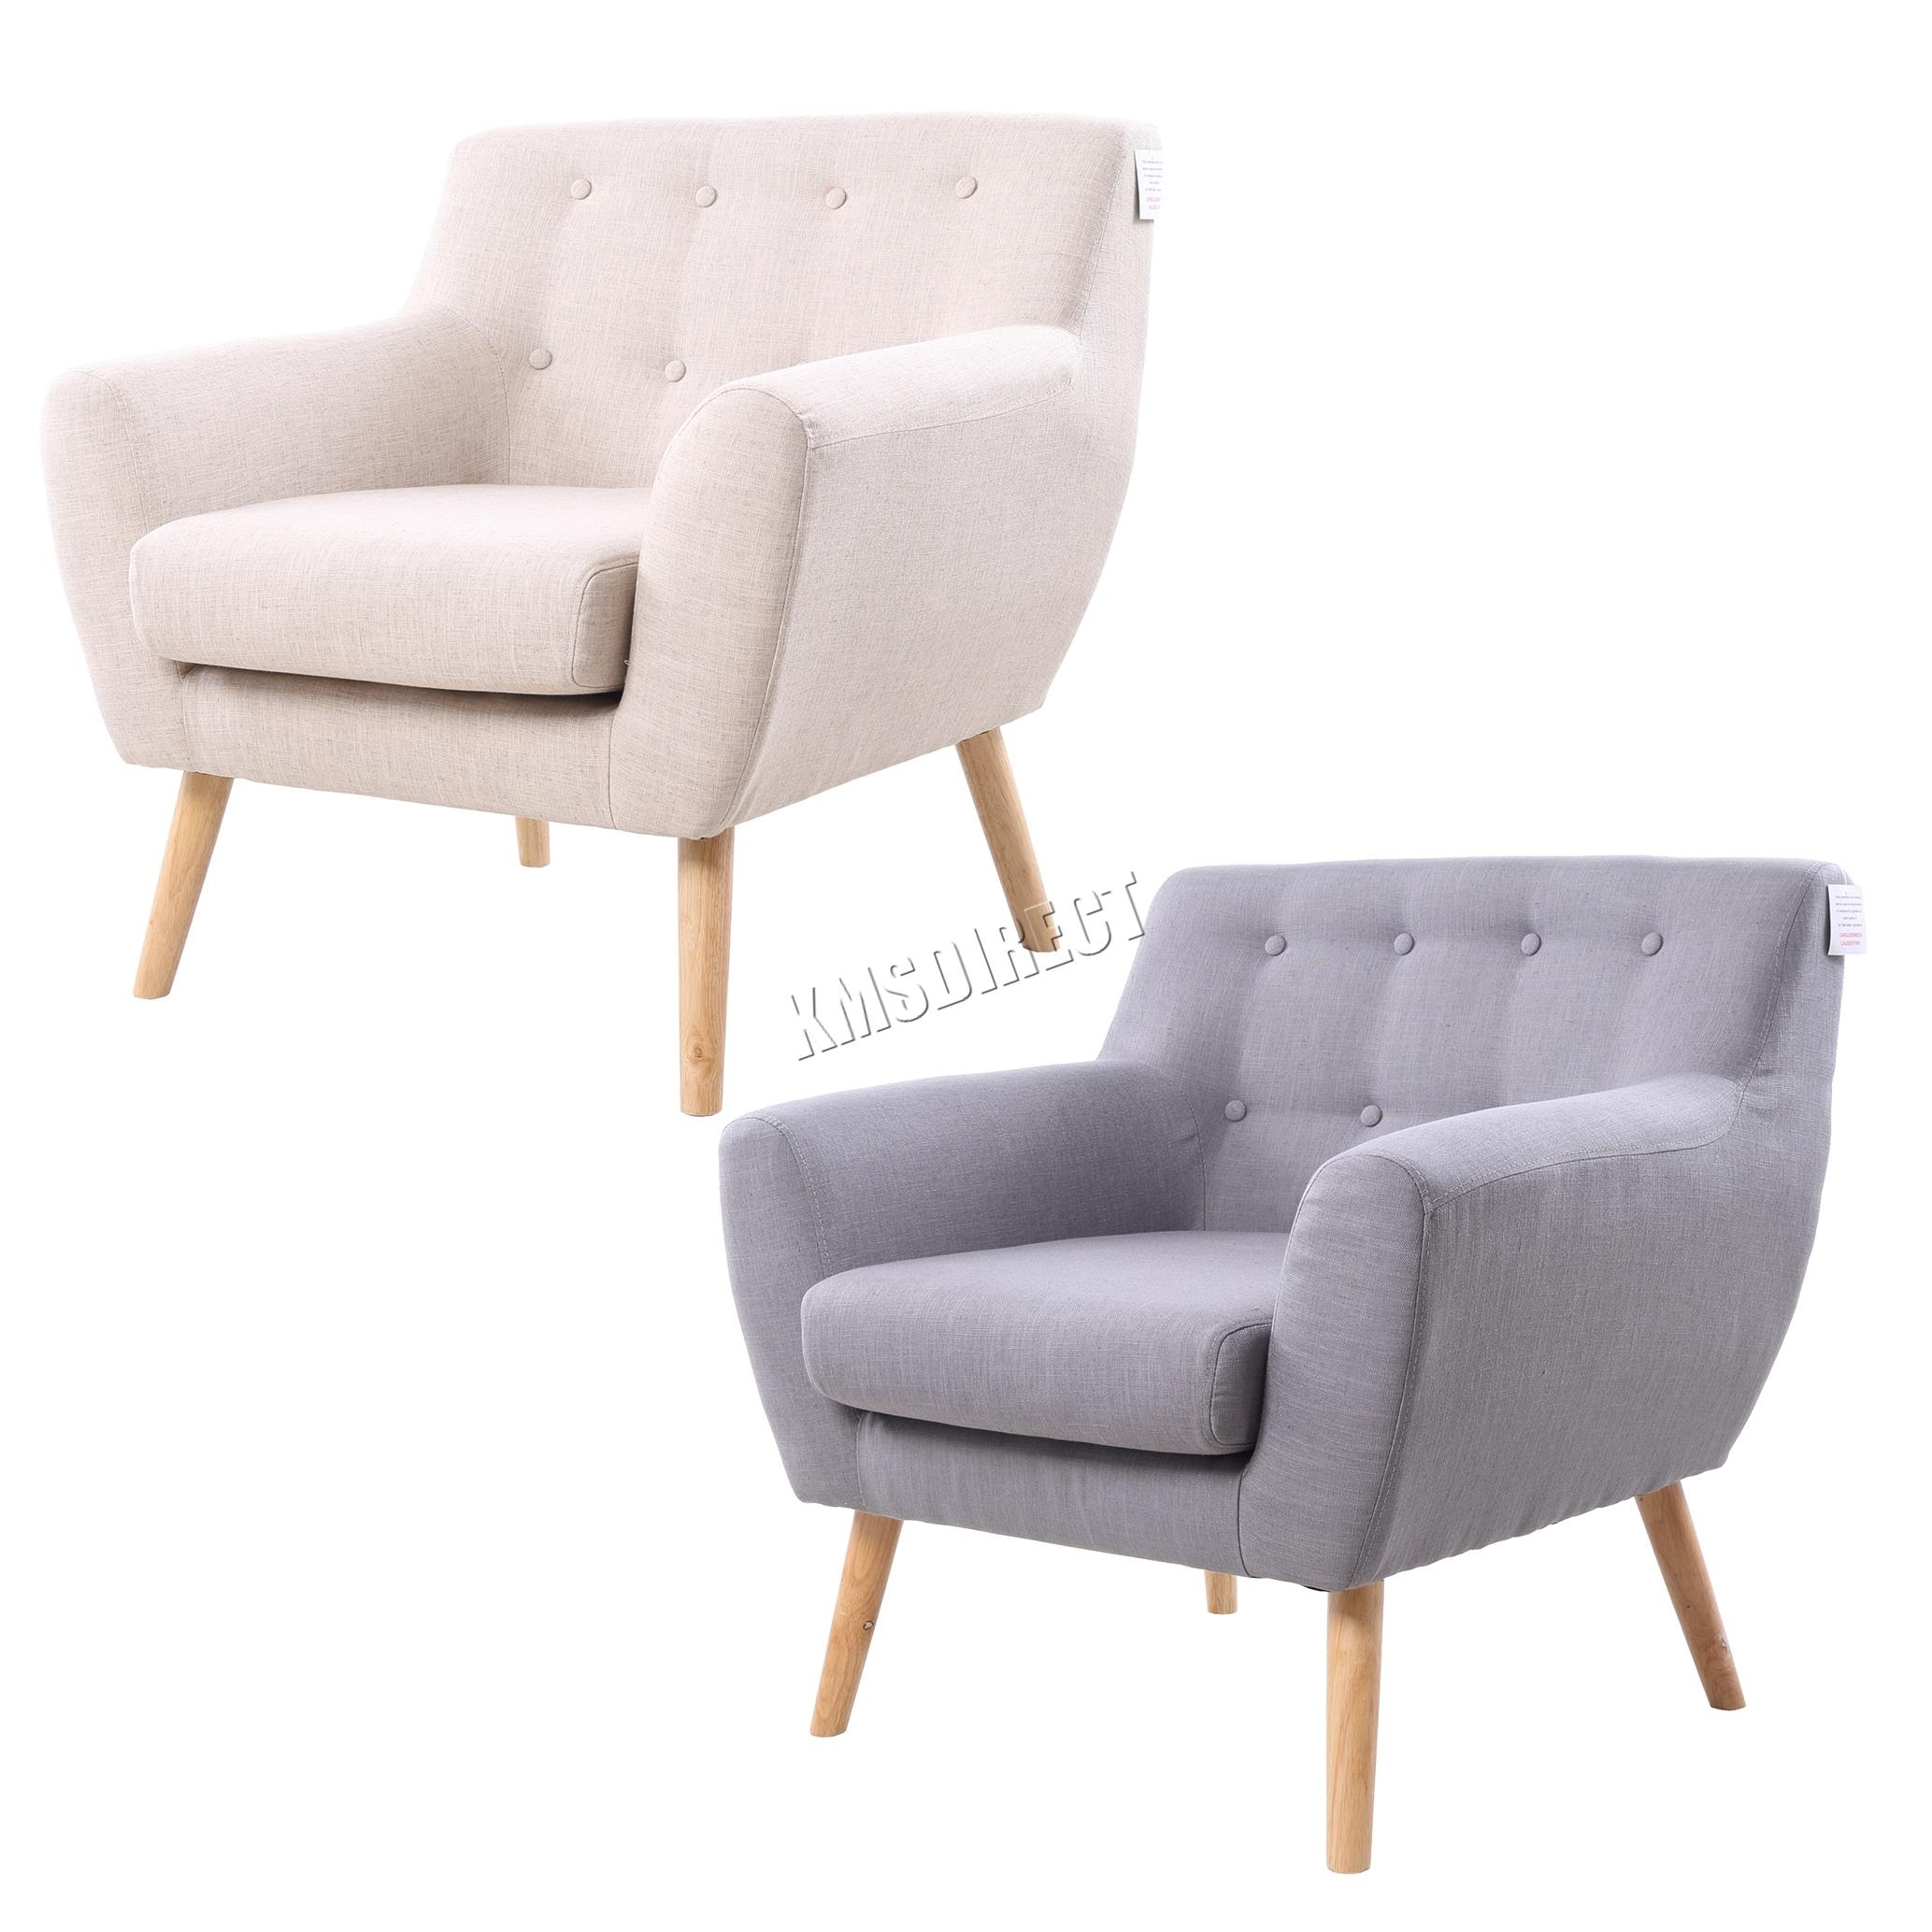 Foxhunter Linen Fabric 1 Single Seat Sofa Tub Arm Chair Dining In Single Seat Sofa Chairs (View 6 of 20)